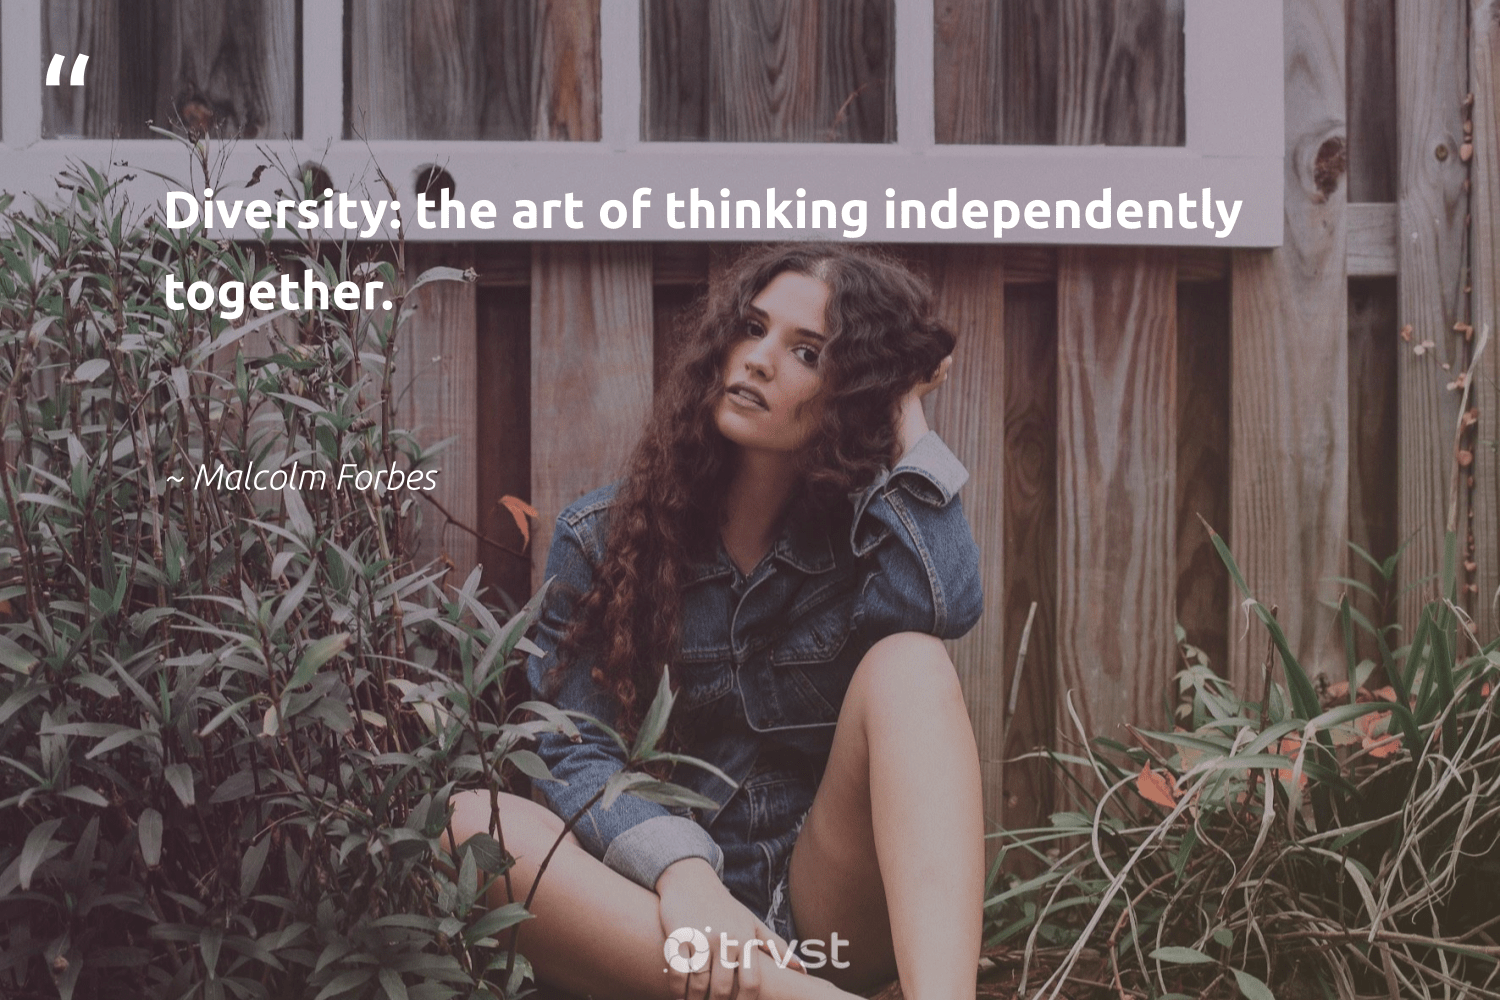 """Diversity: the art of thinking independently together.""  - Malcolm Forbes #trvst #quotes #socialgood #thinkgreen #weareallone #dogood #giveback #socialimpact #bethechange #planetearthfirst #makeadifference #beinspired"